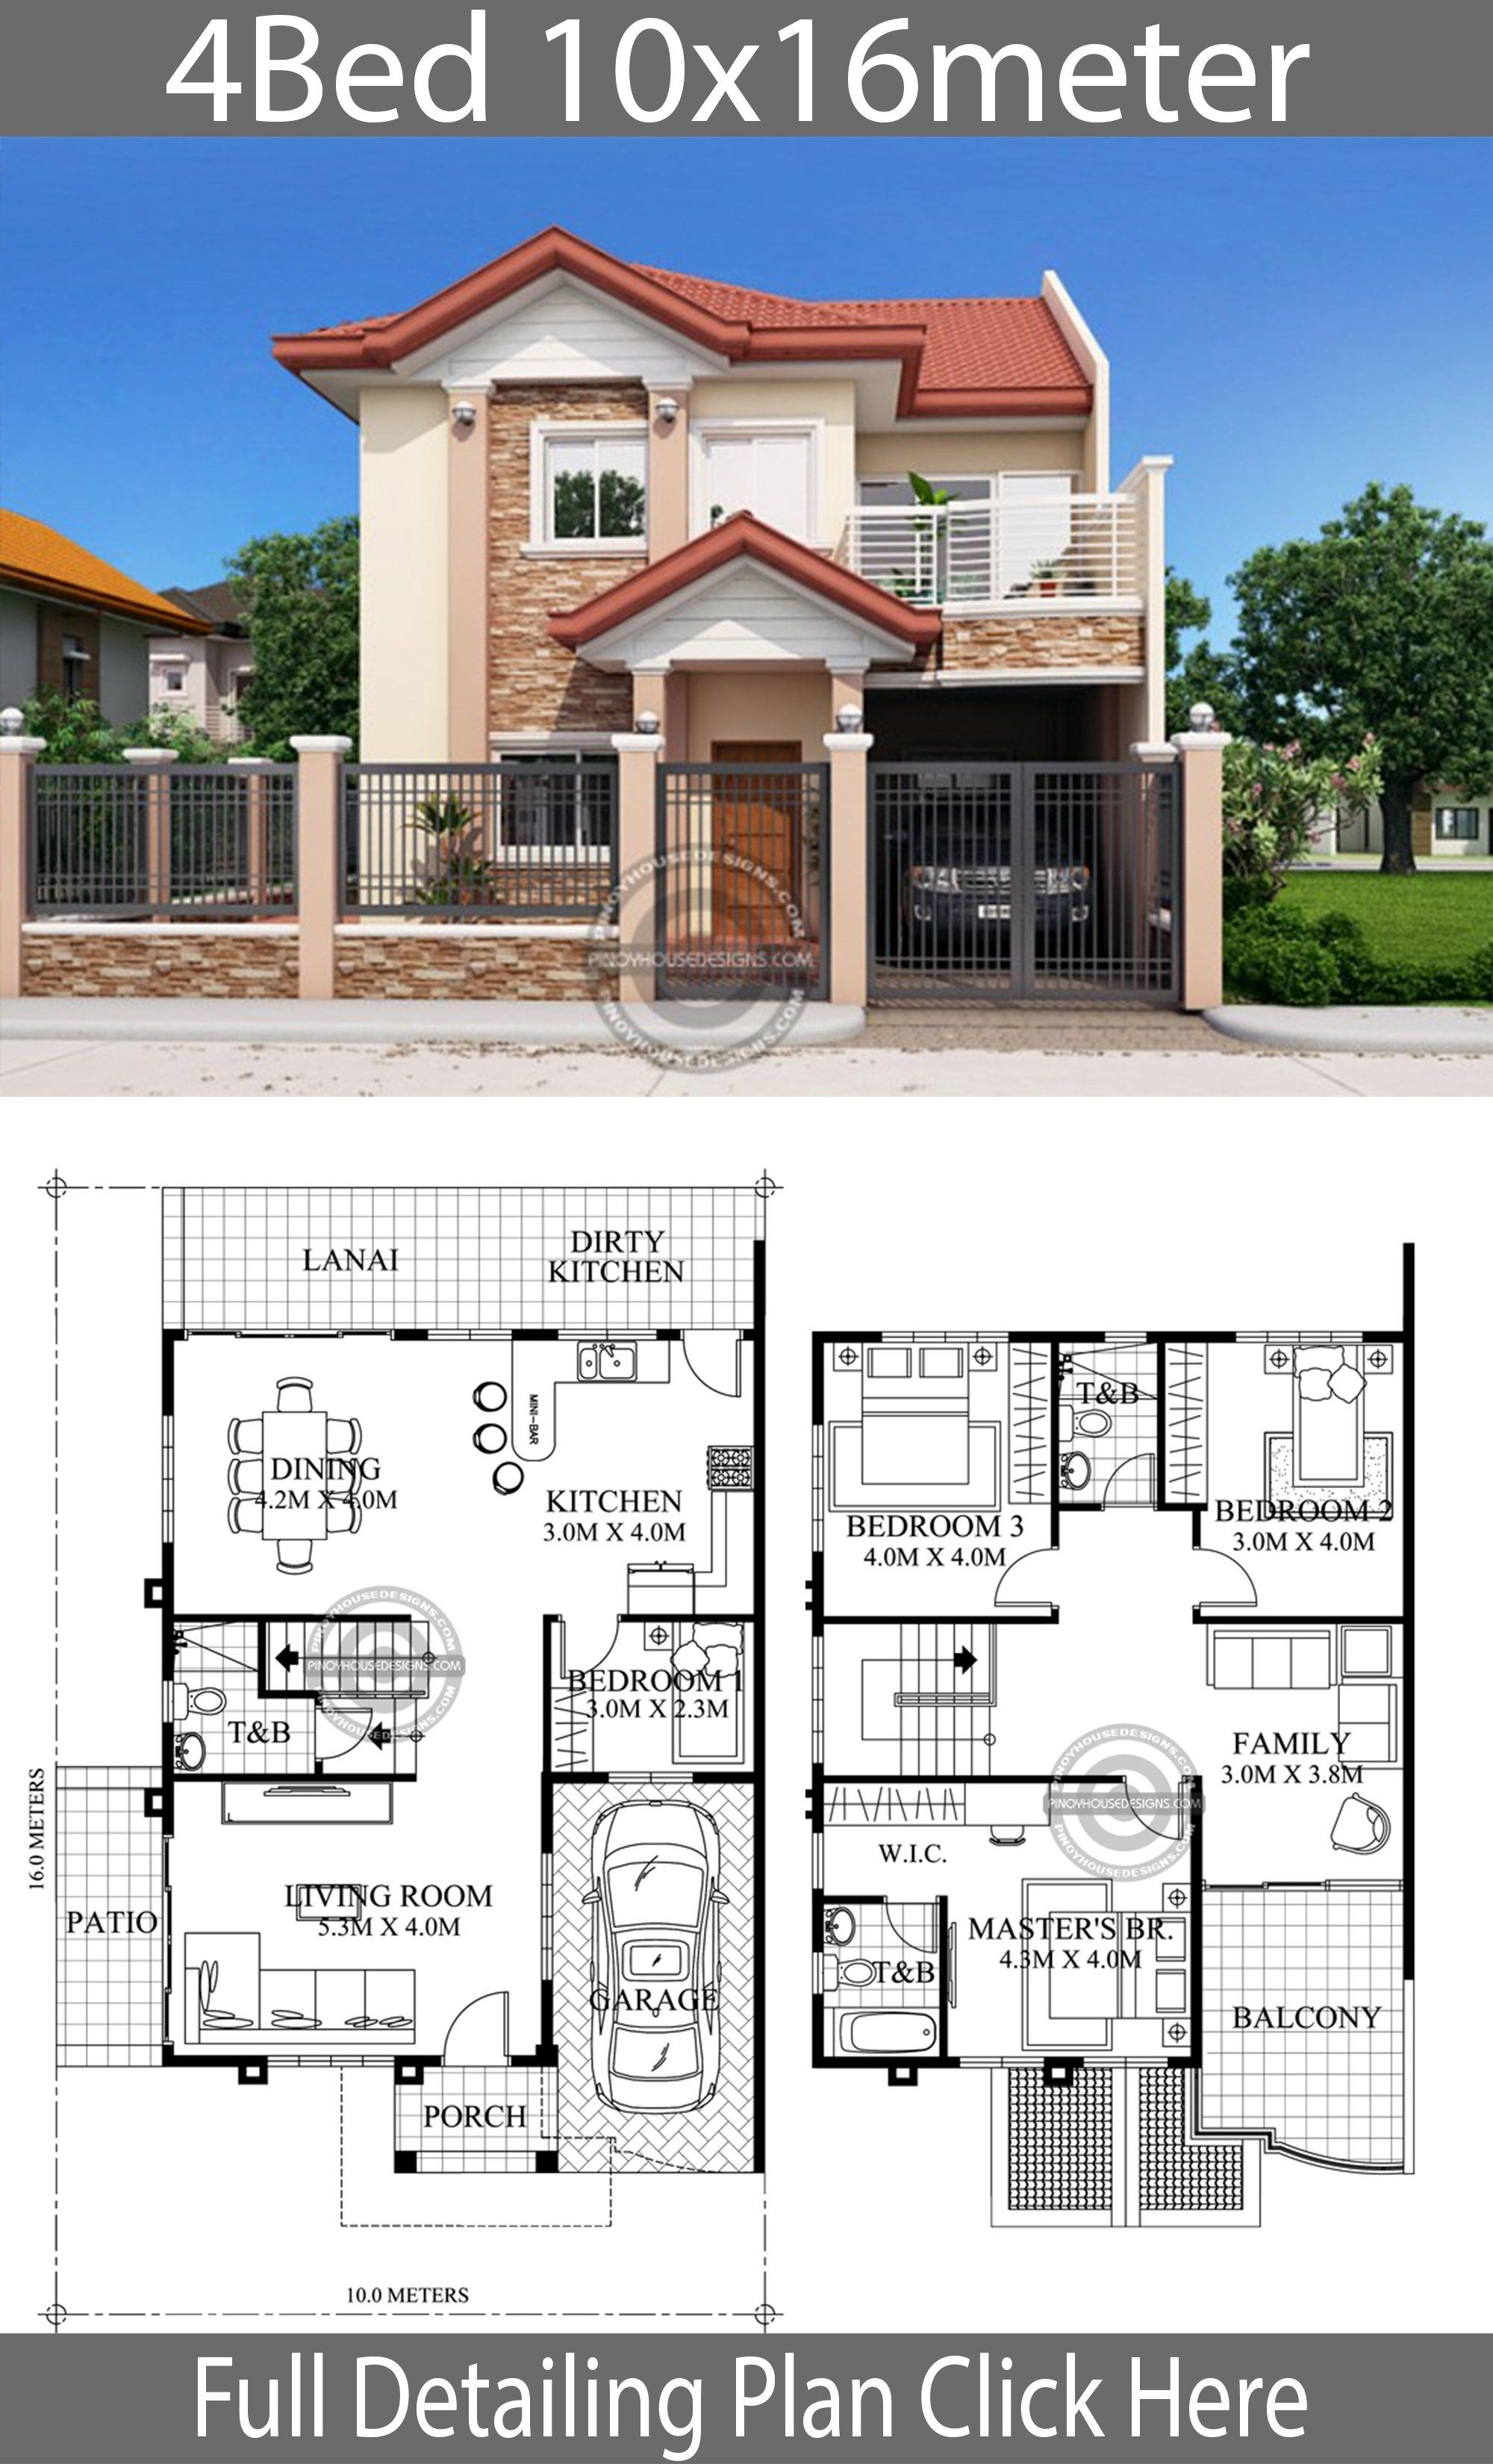 Home Design 10x16m 4 Bedrooms House Description One Car Parking And Gardenground Level Philippines House Design House Construction Plan Two Story House Design